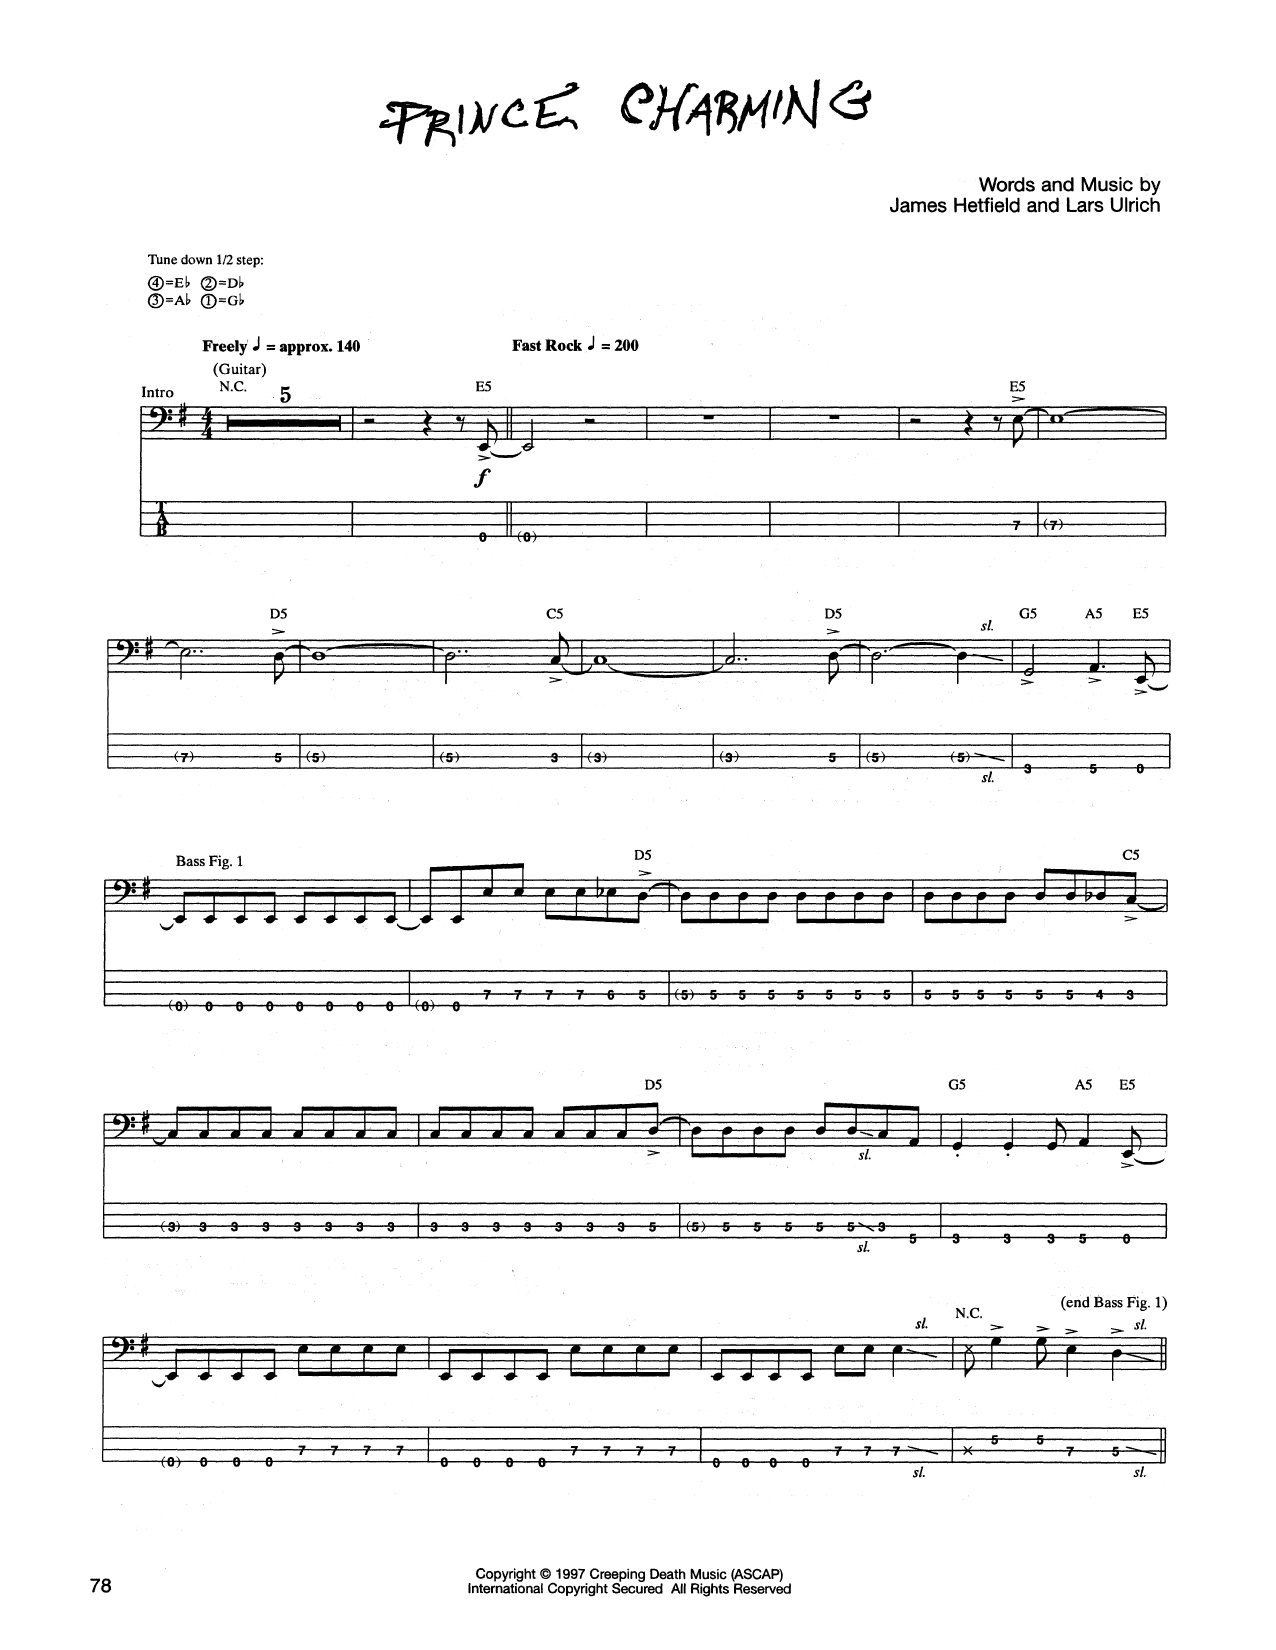 Tablature guitare Prince Charming de Metallica - Tablature Basse